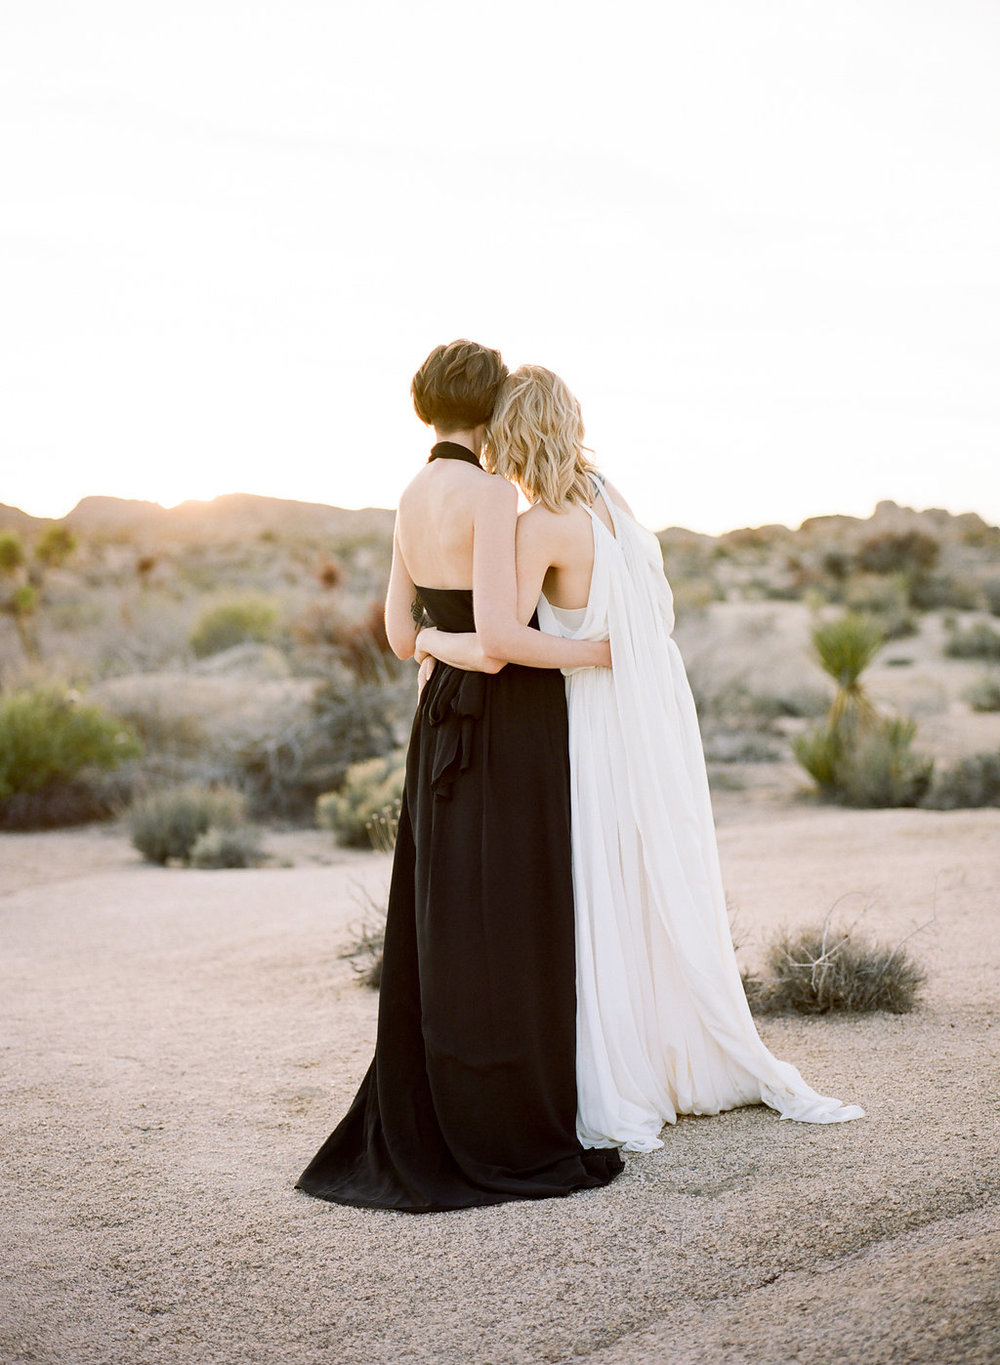 Jessica Schilling Wedding Photography couple admiring desert shot from behind